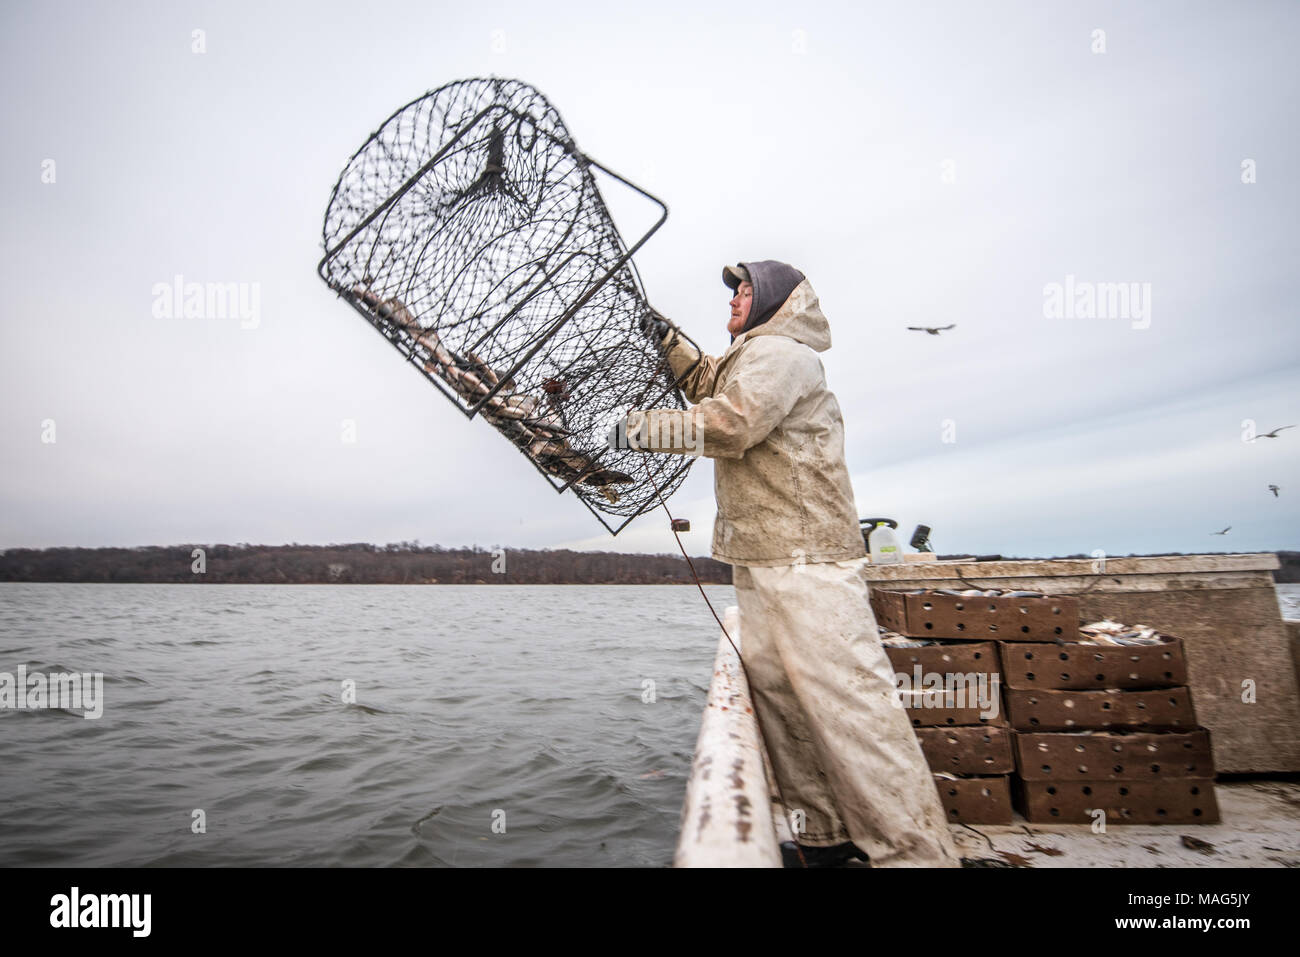 Waterman throwing out a hoop net filled with manhaden bait fish to catch blue catfish on the Potomac River near Fort Washington, Maryland - Stock Image